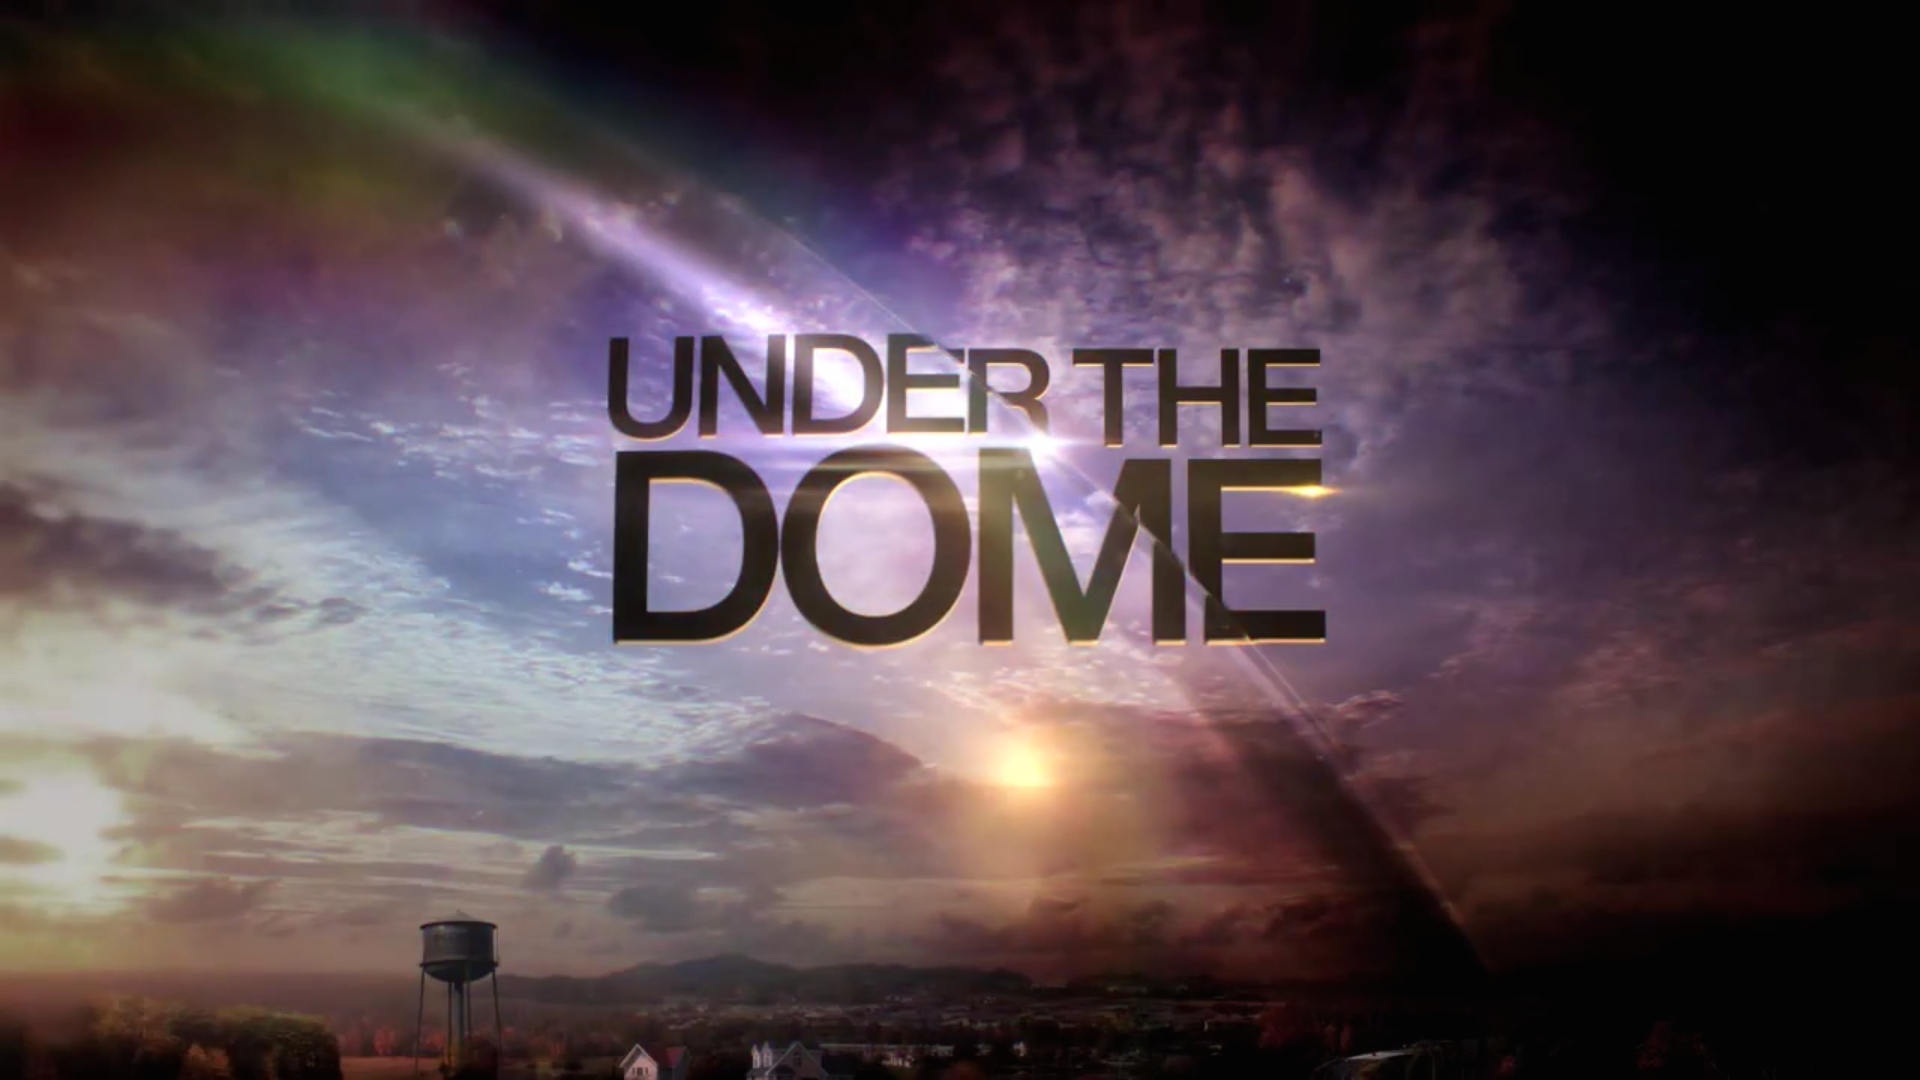 Under The Dome Wallpaper 1920x1080 73739